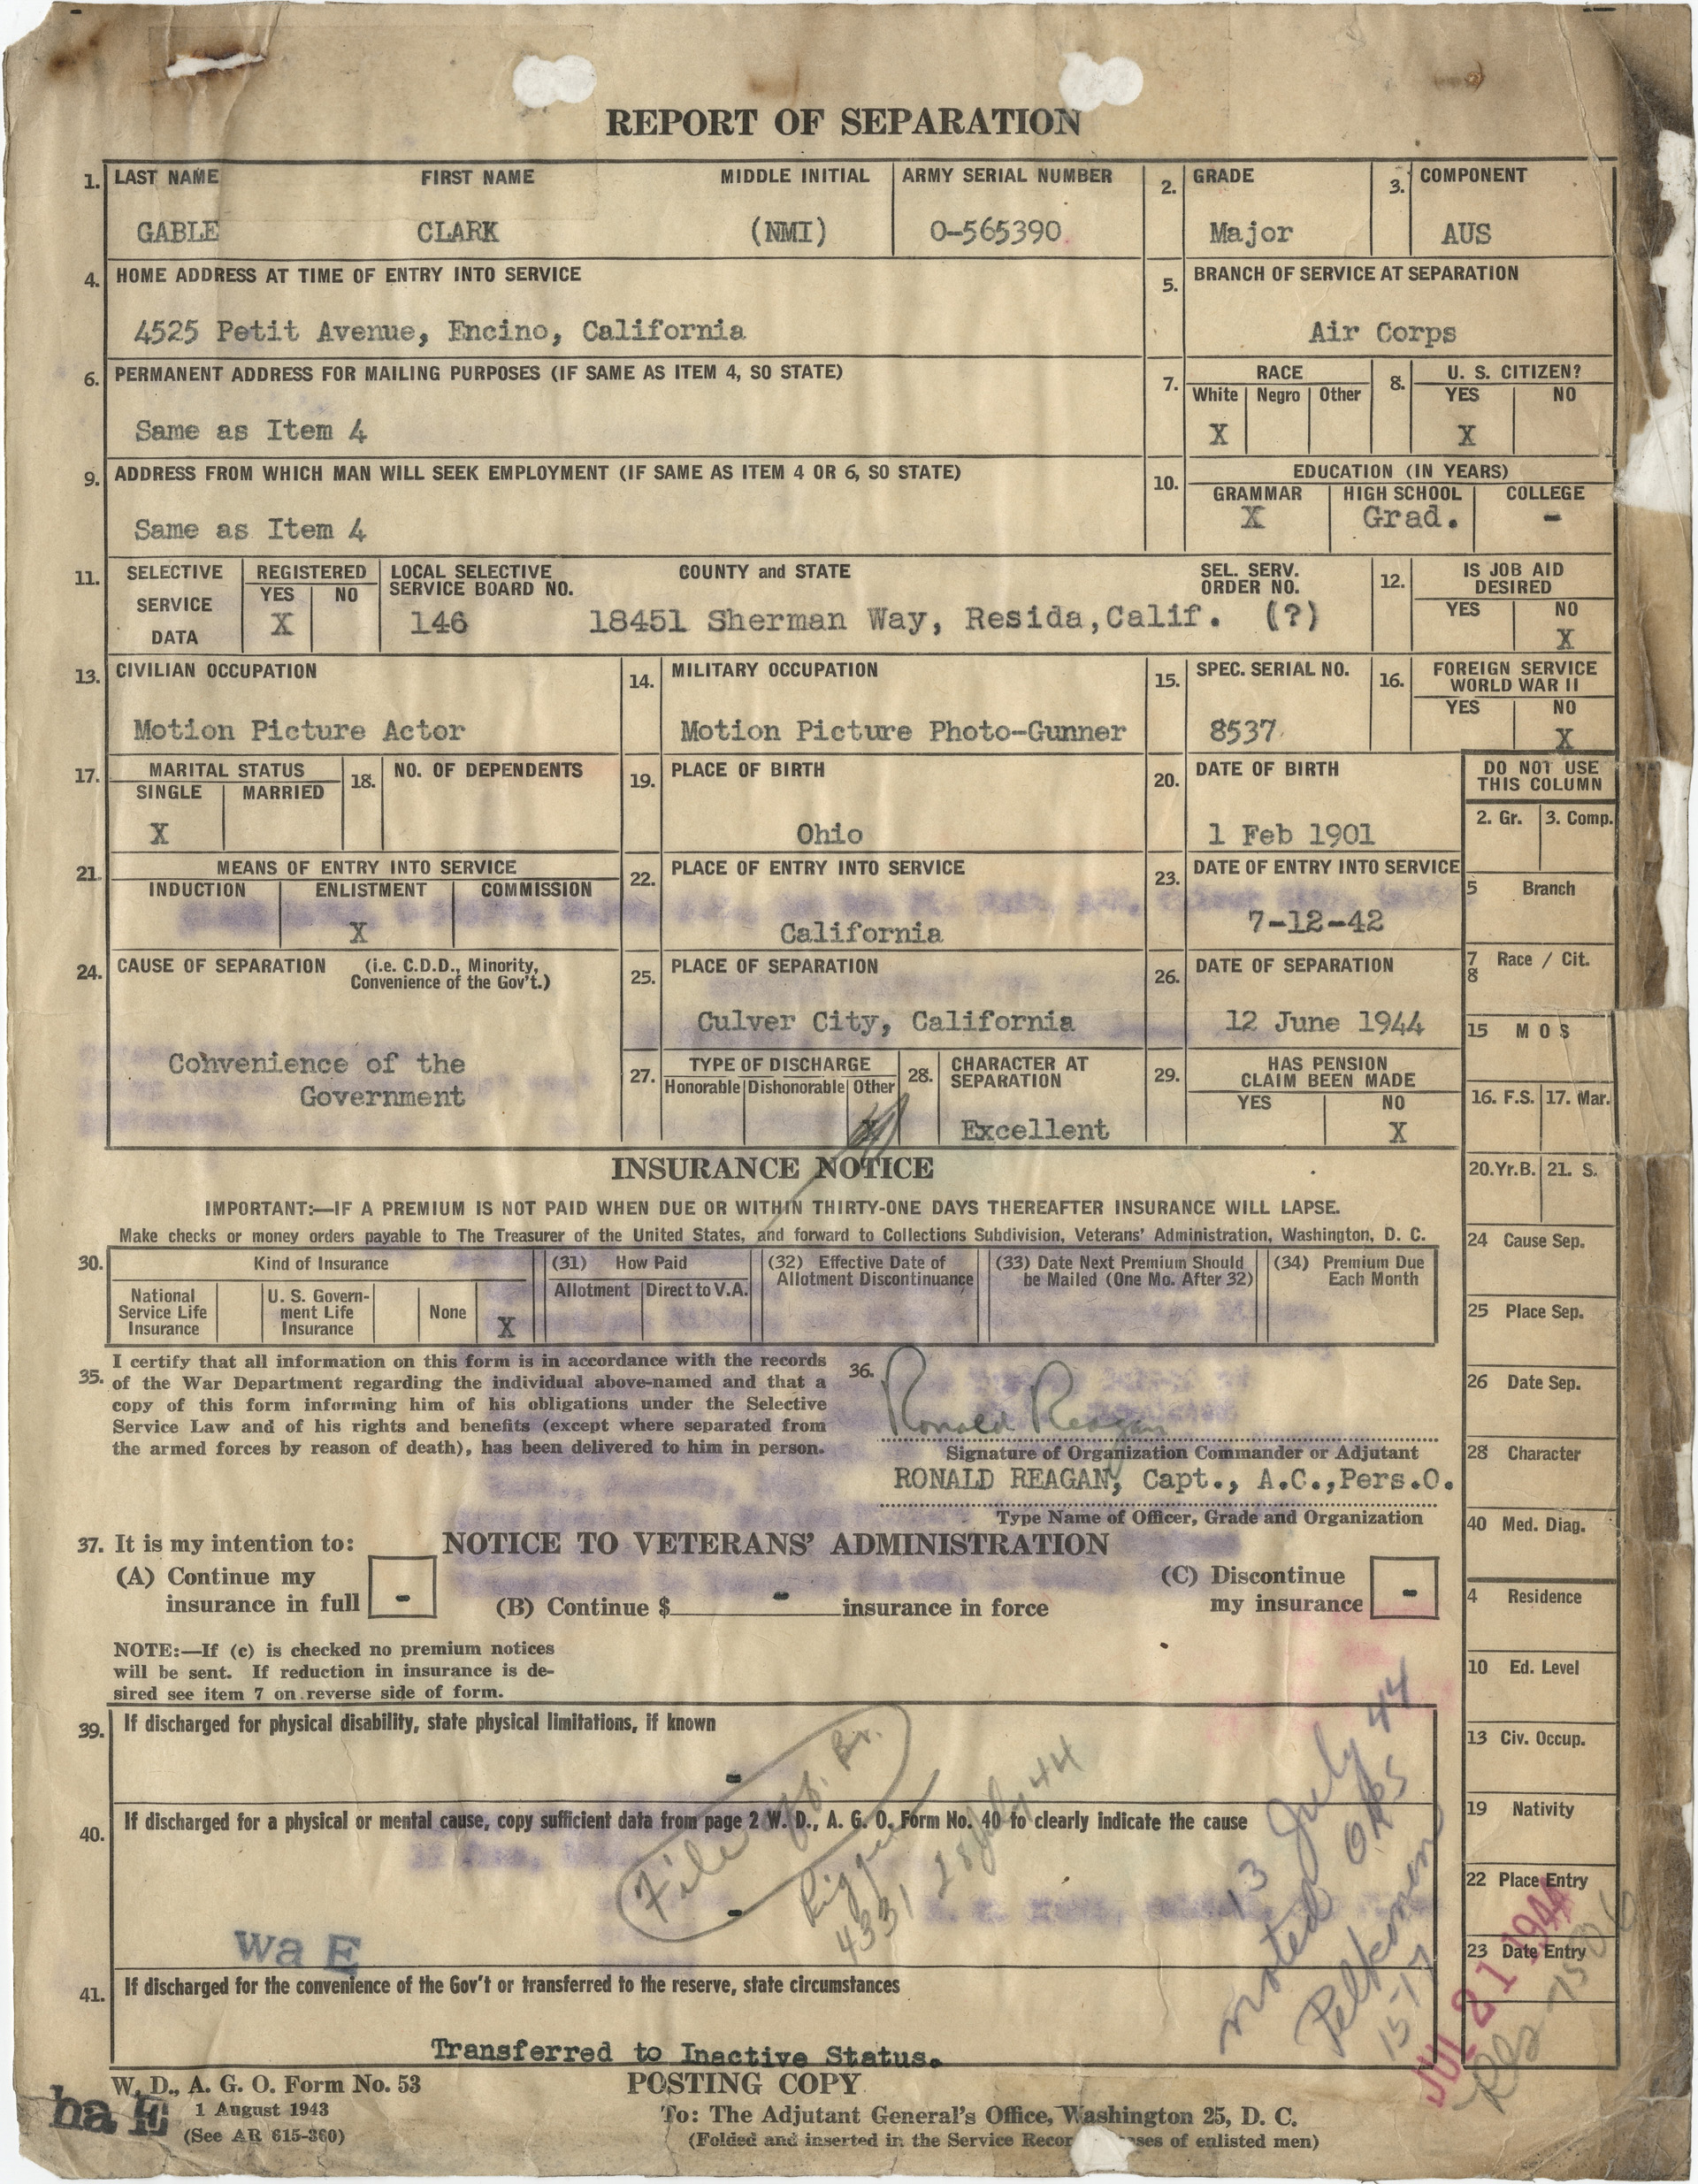 Clark Gable's Report of Separation signed by Ronald Reagan